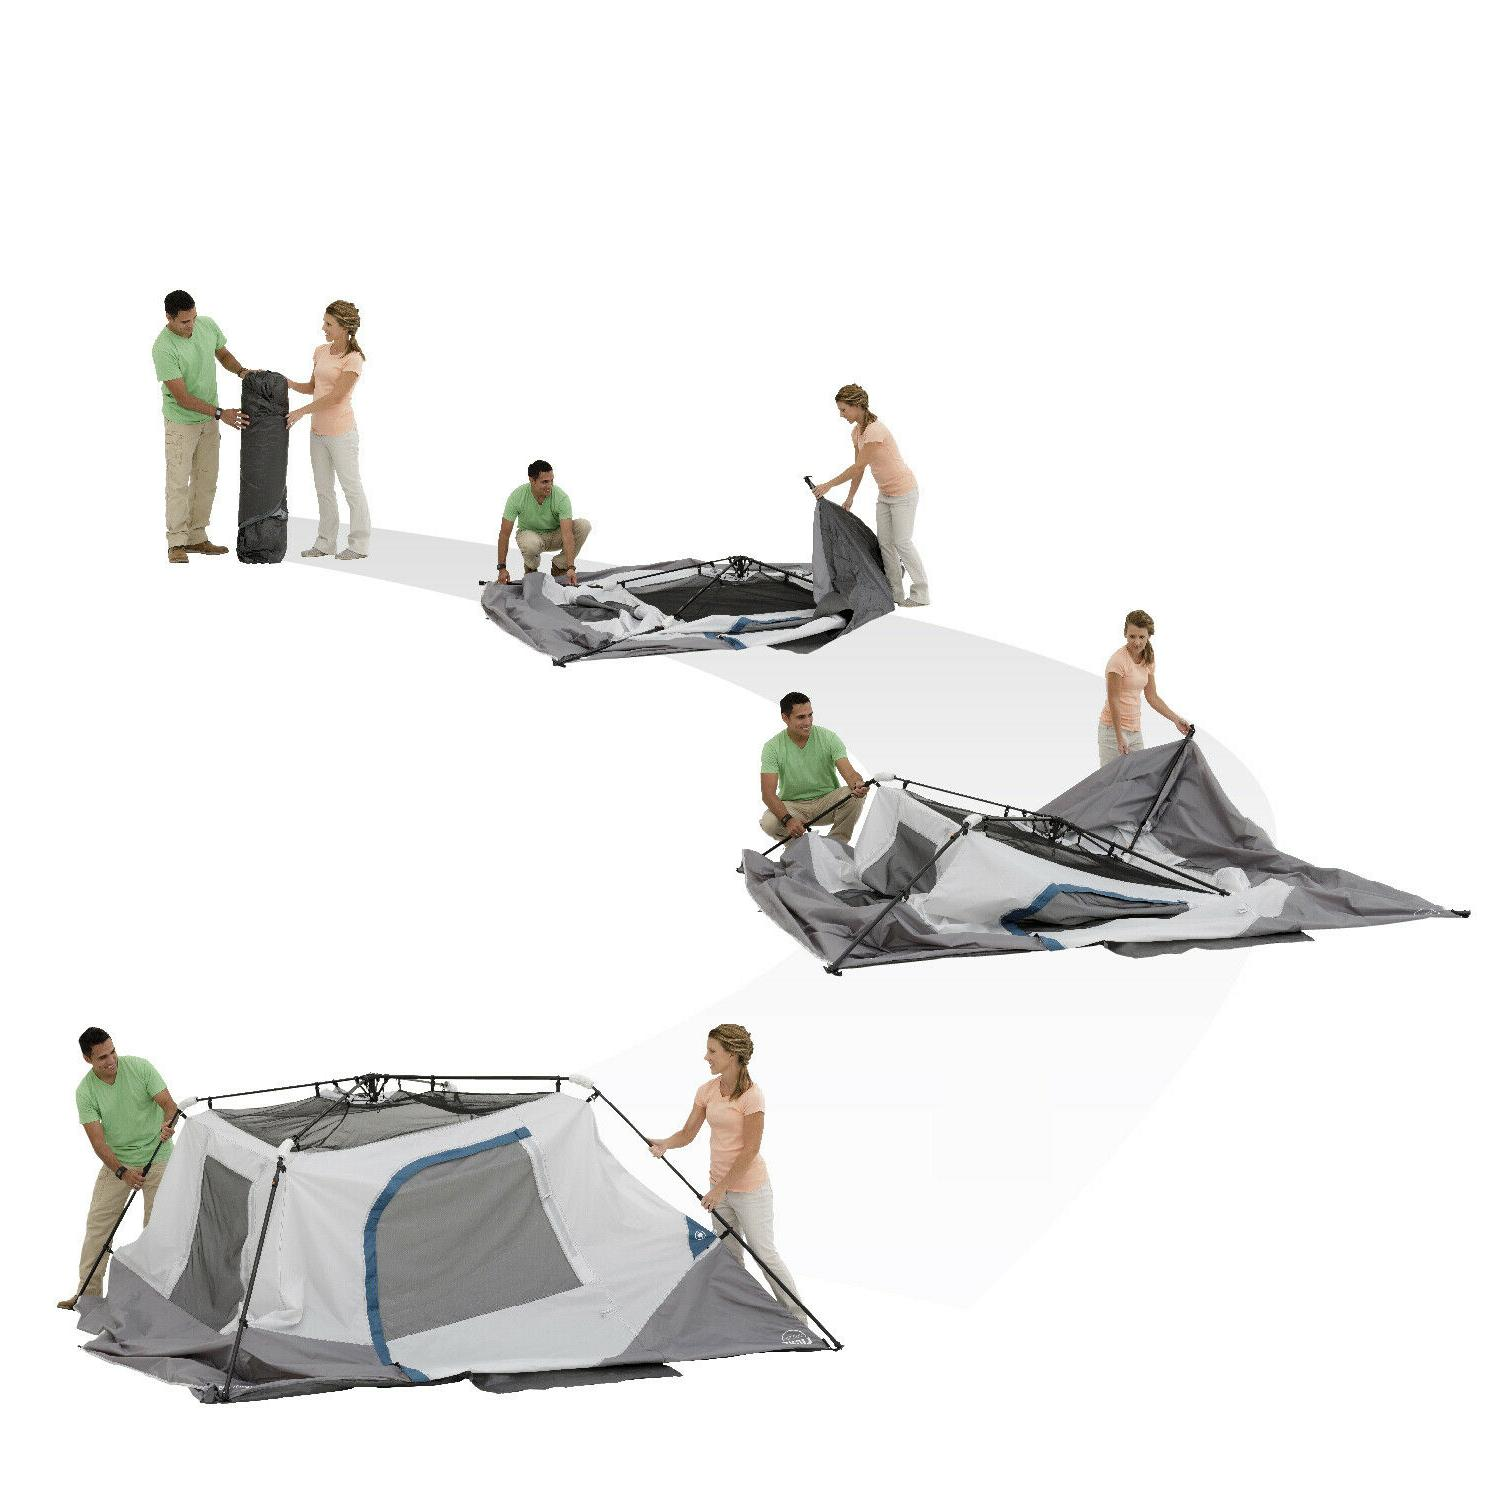 Ozark 6-Person Cabin With LED